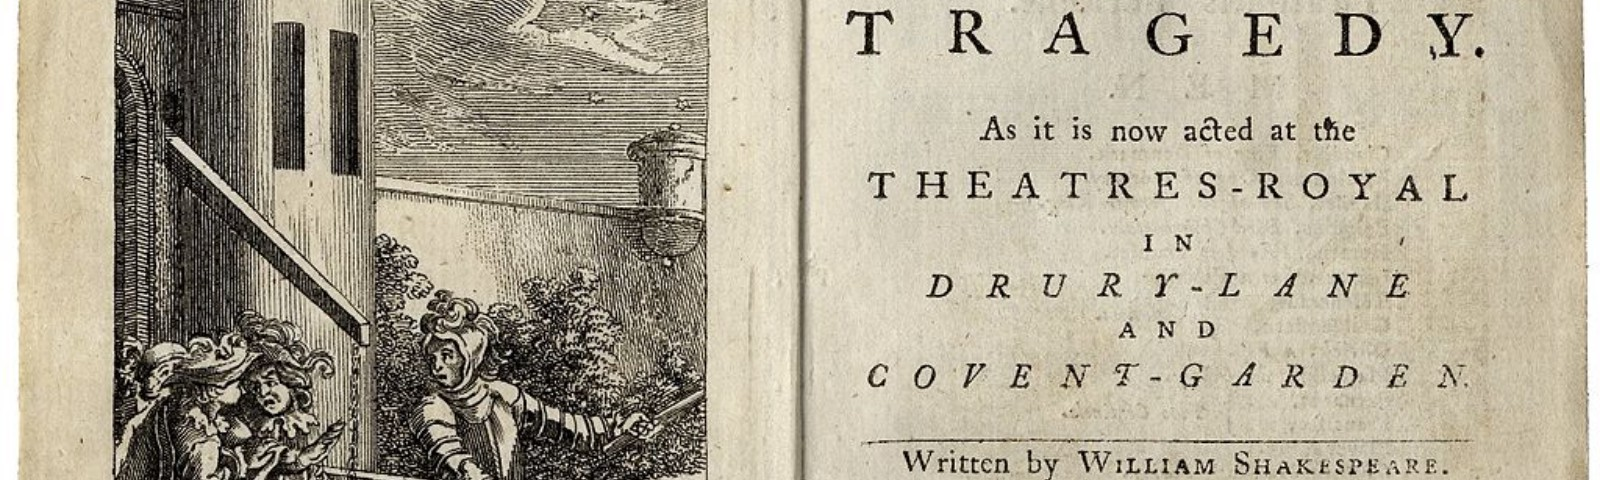 Title page and frontispiece for Hamlet, Prince of Denmark: A Tragedy. As it is now acted at the Theatres-Royal in Drury-Lane and Covent-Garden. London, 1776